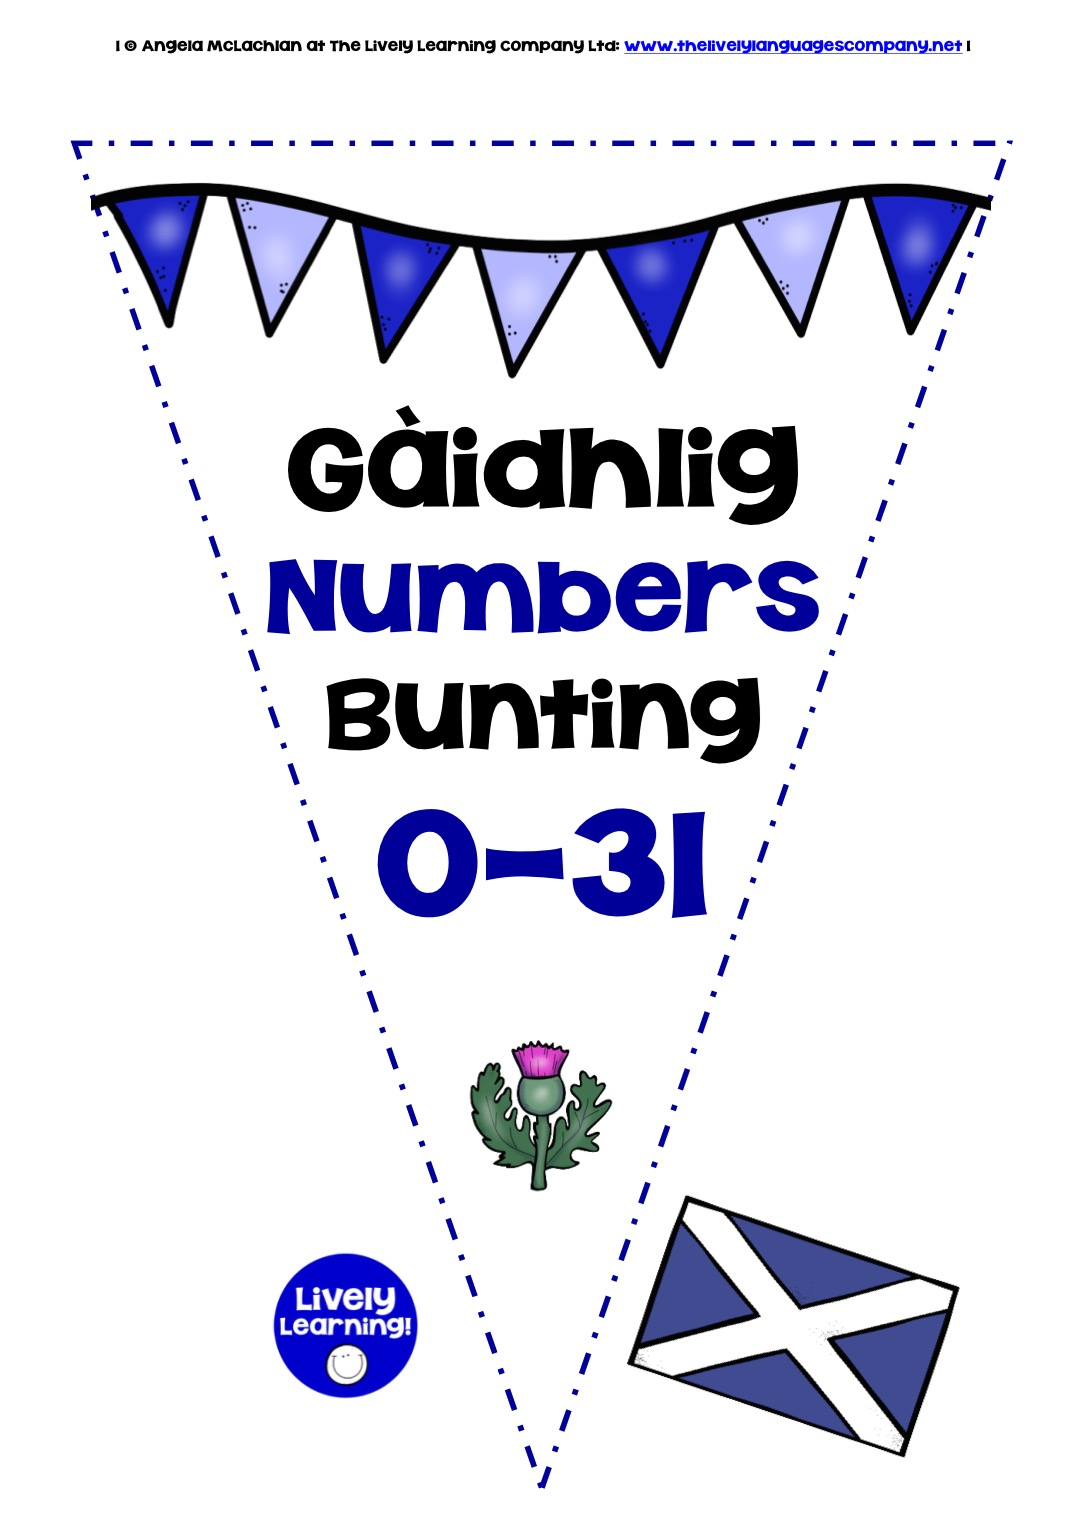 SCOTTISH GAELIC NUMBERS 0-31 - BUNTING / BANNERS